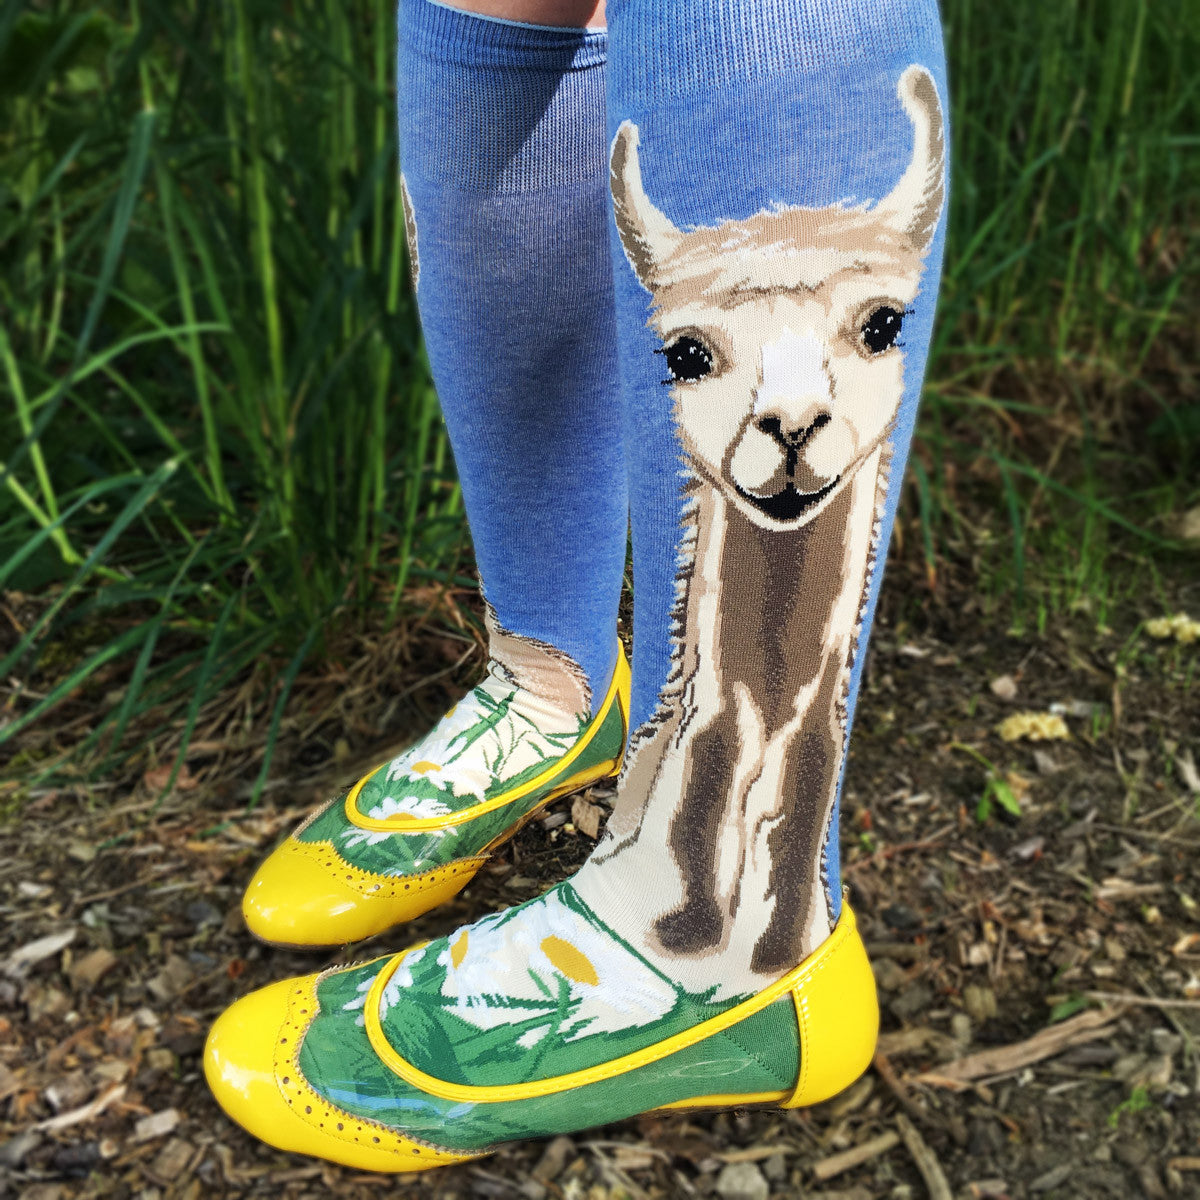 A cute llama adorns this blue and green animal-themed knee-sock style by ModSocks, worn here with bright yellow flats.